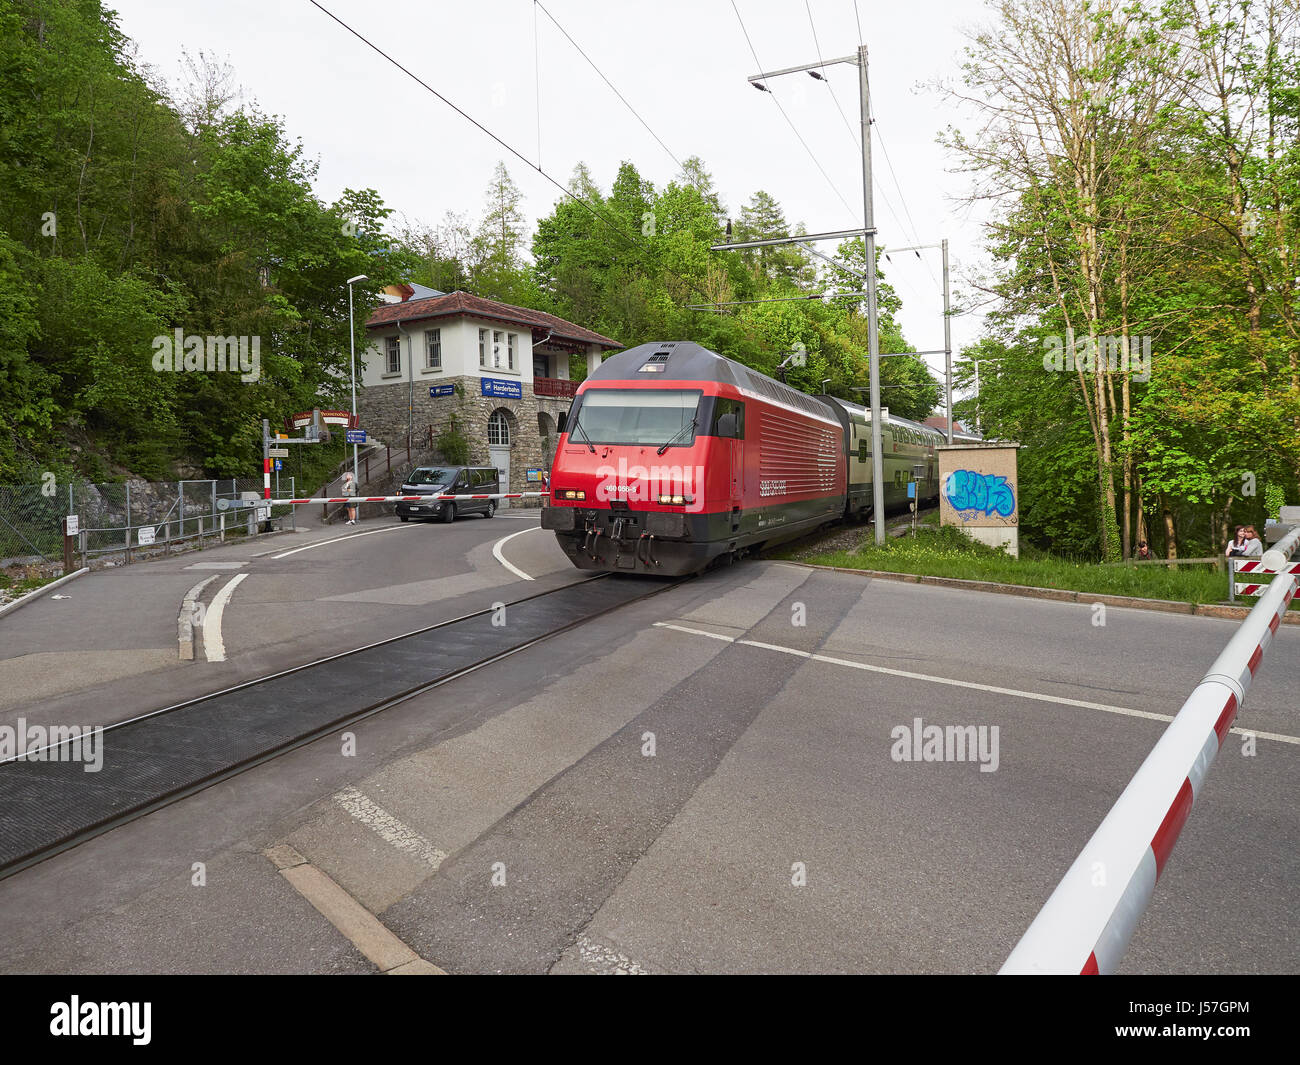 Switzerland an SBB intercity IC train leaving Interlaken Ost for Bern passing the Harder Kulm funicular station - Stock Image